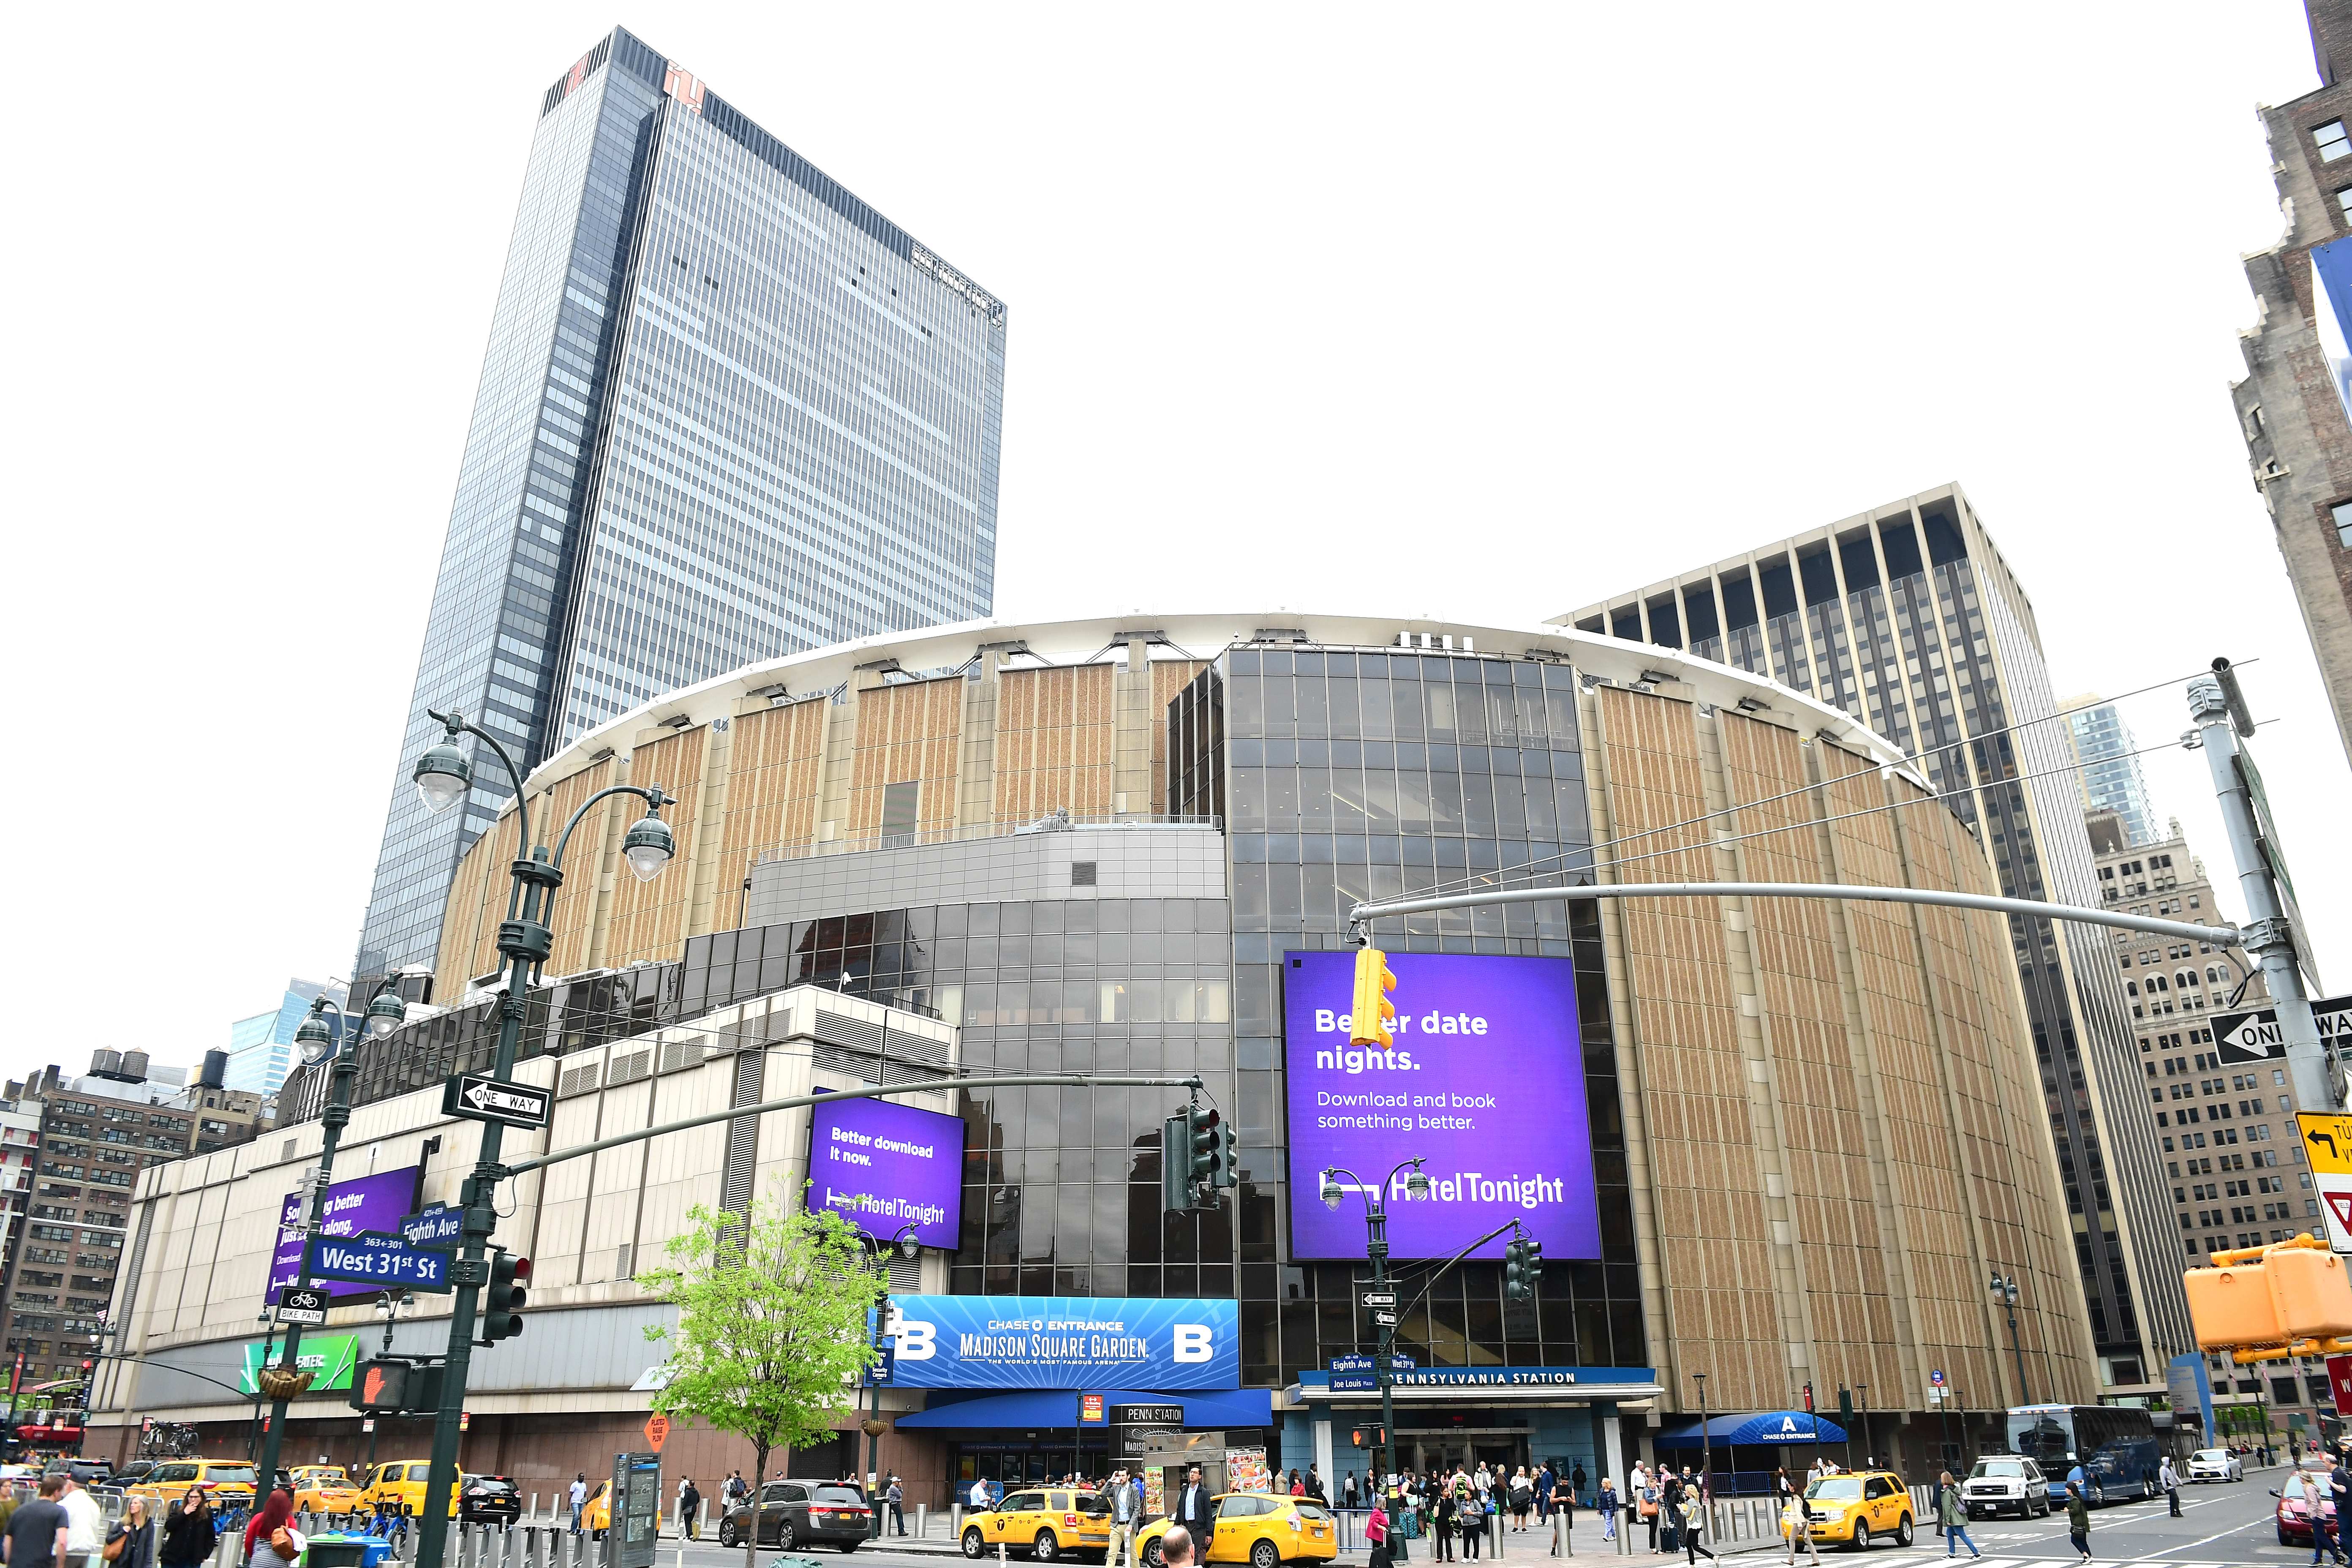 A view of Madison Square Garden in New York.